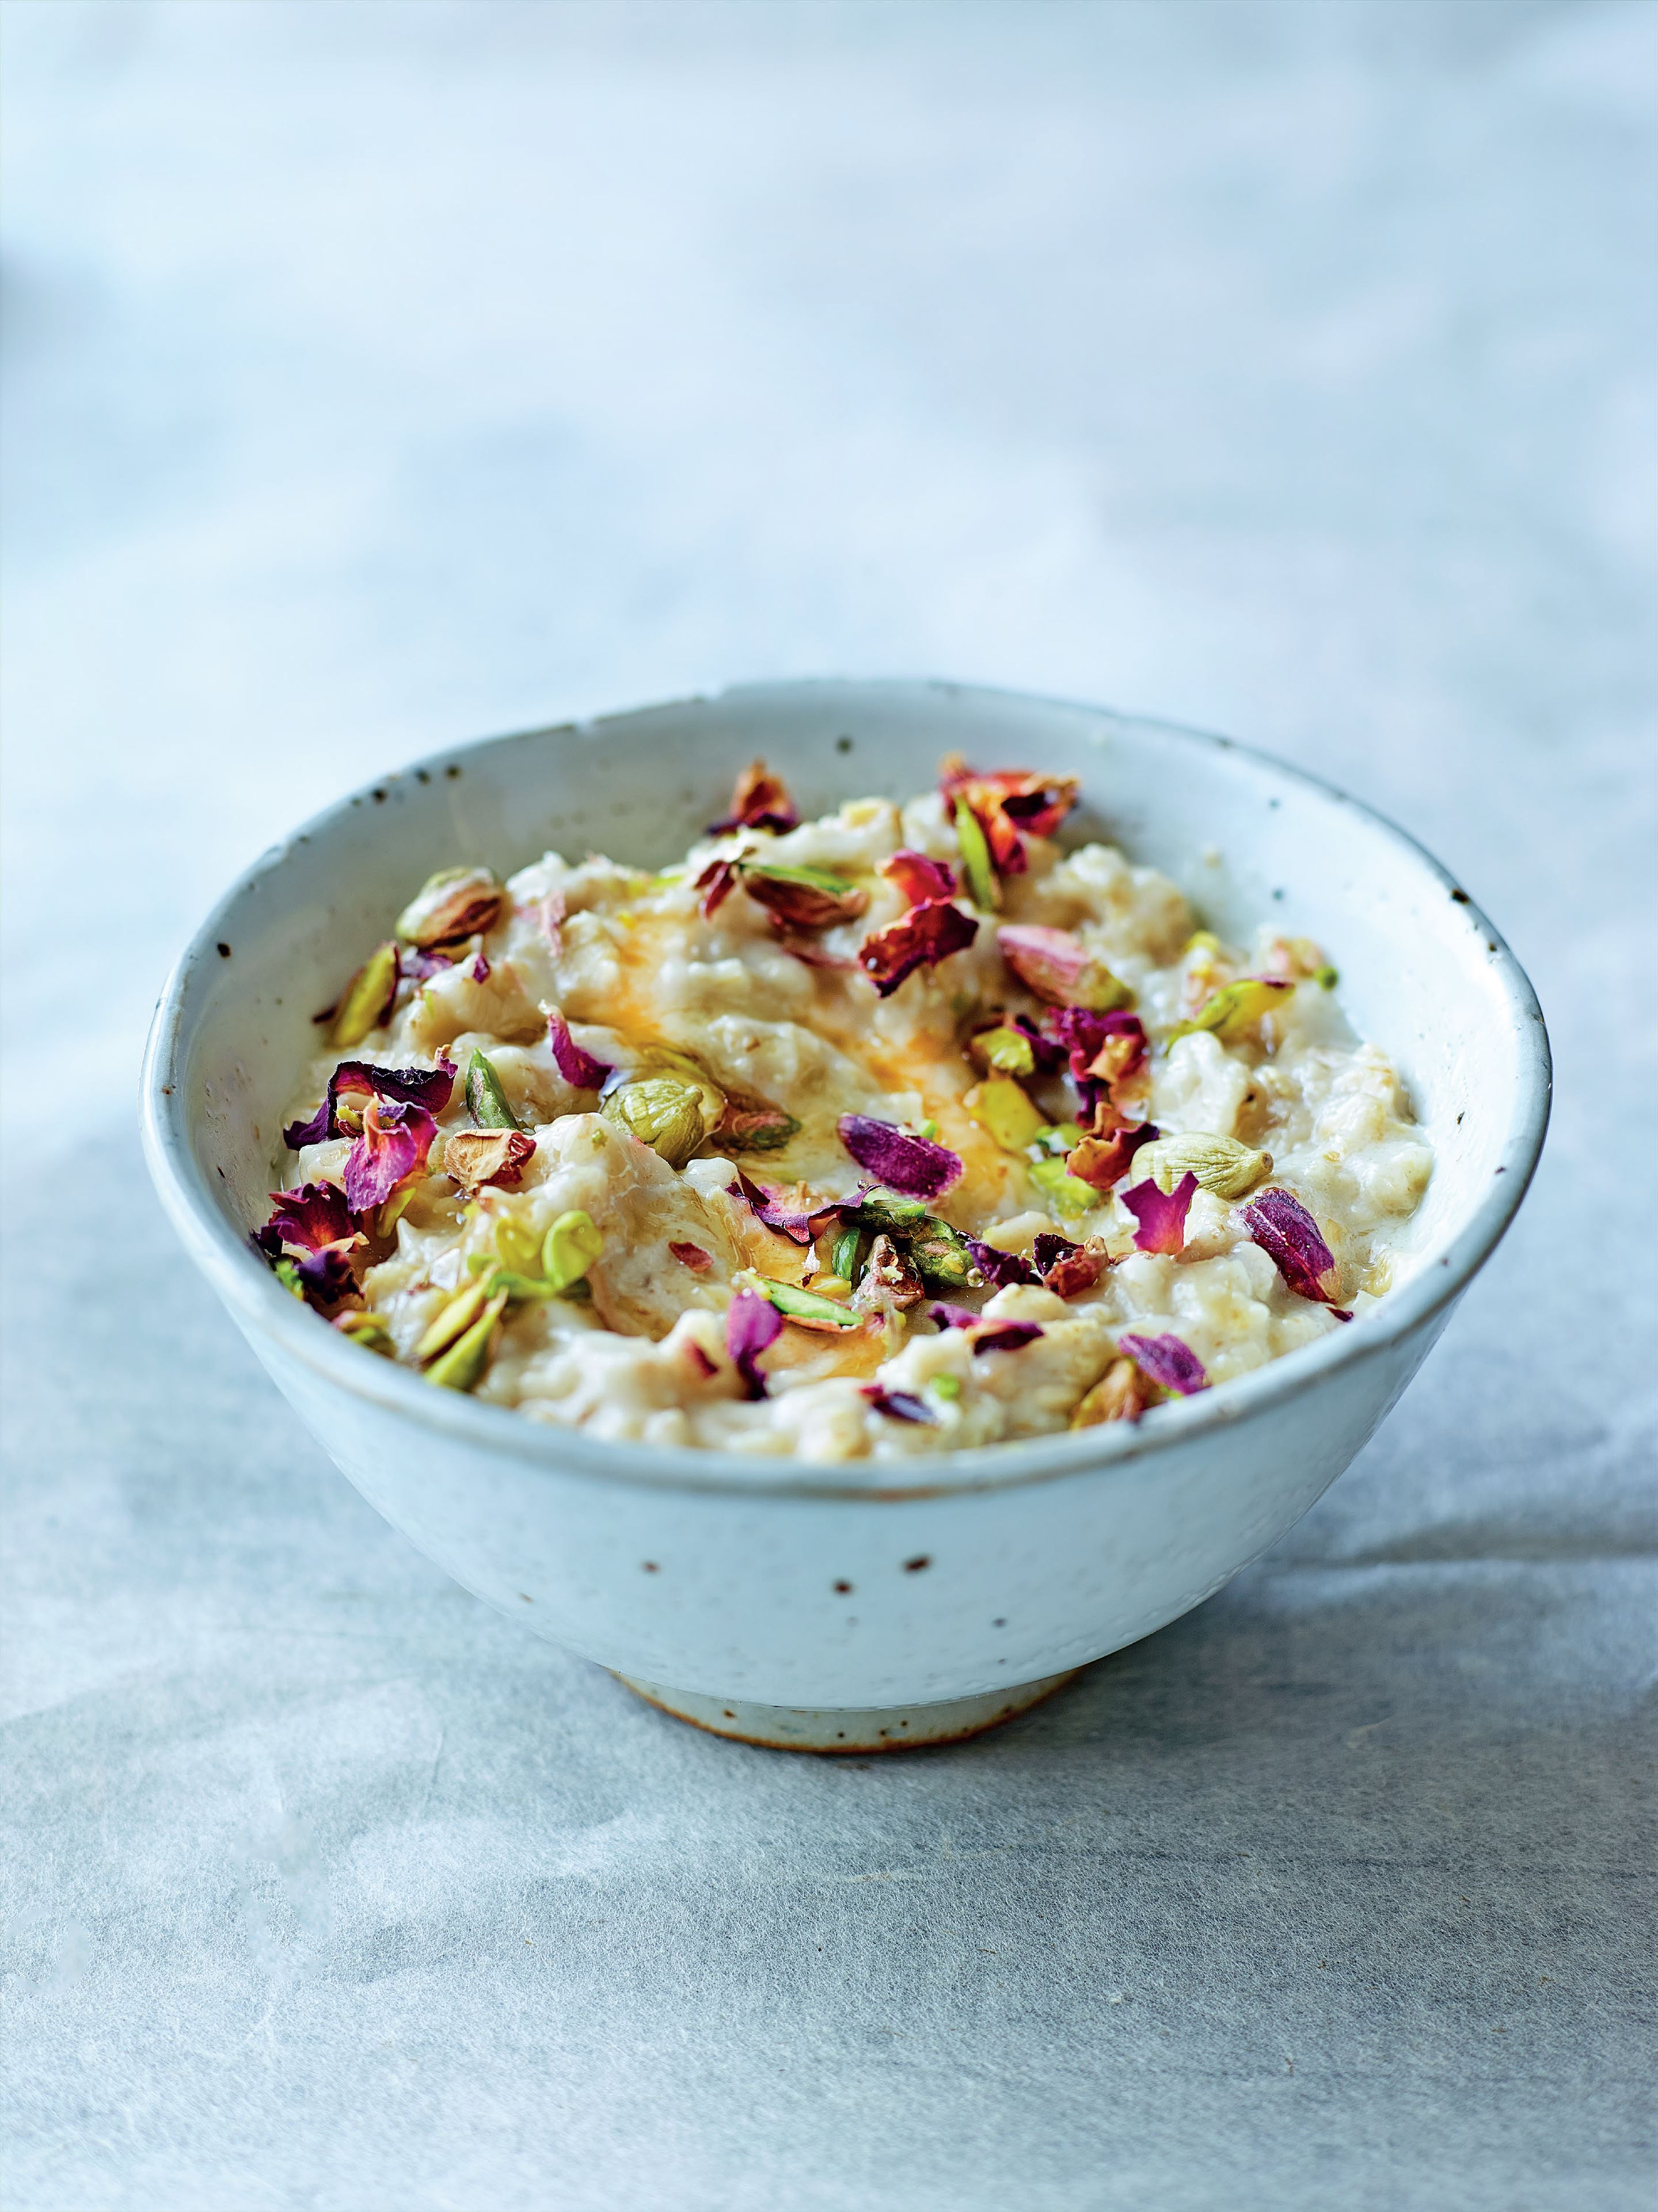 Rose, cardamom and pistachio porridge